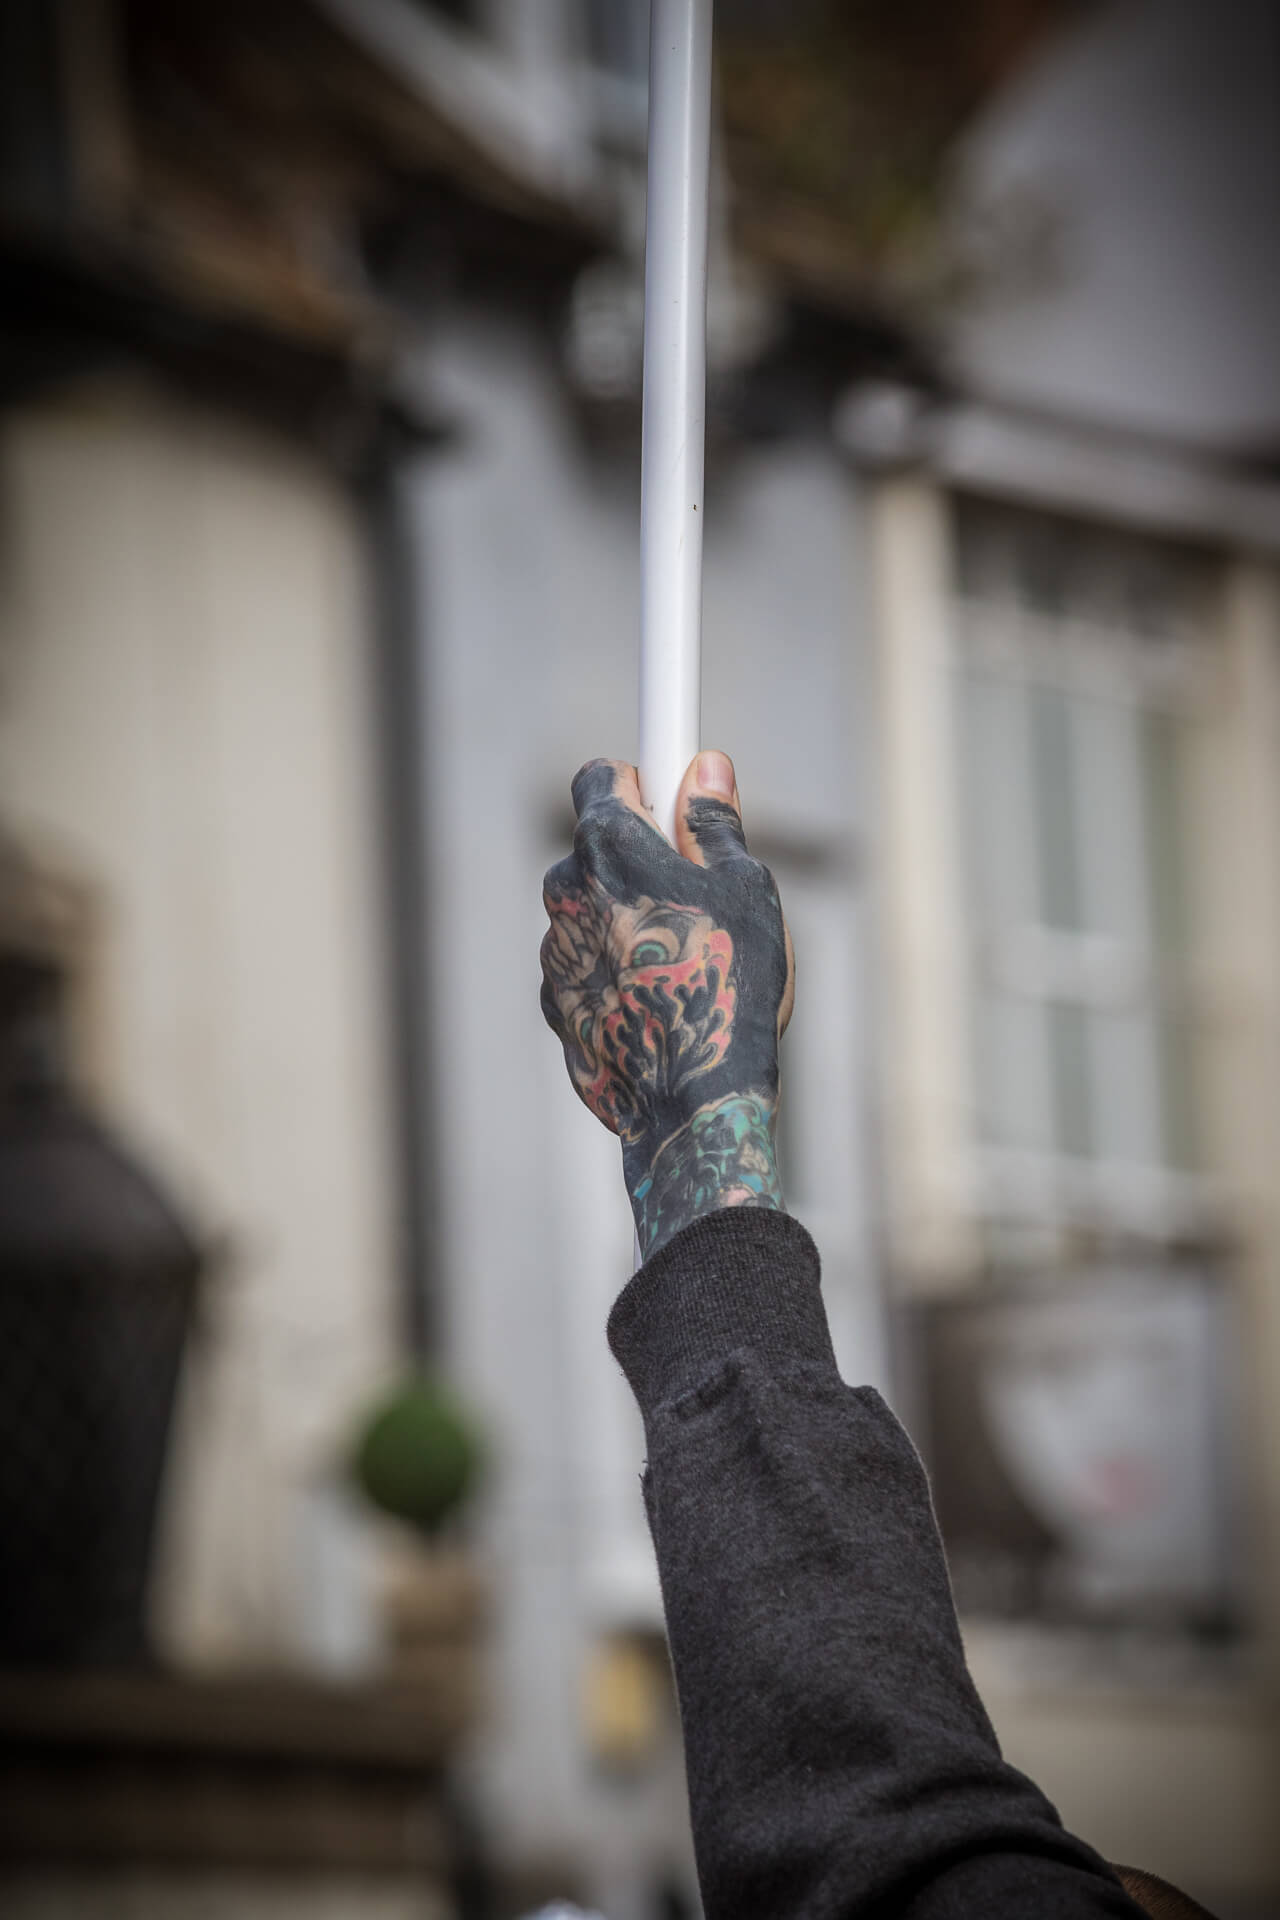 A colour image, taken from a distance, of the heavily tattooed hand of one of the individuals participating in the BNP Marches in Worcester in 2019. He holds aloft a flag attached to a thin white pole.